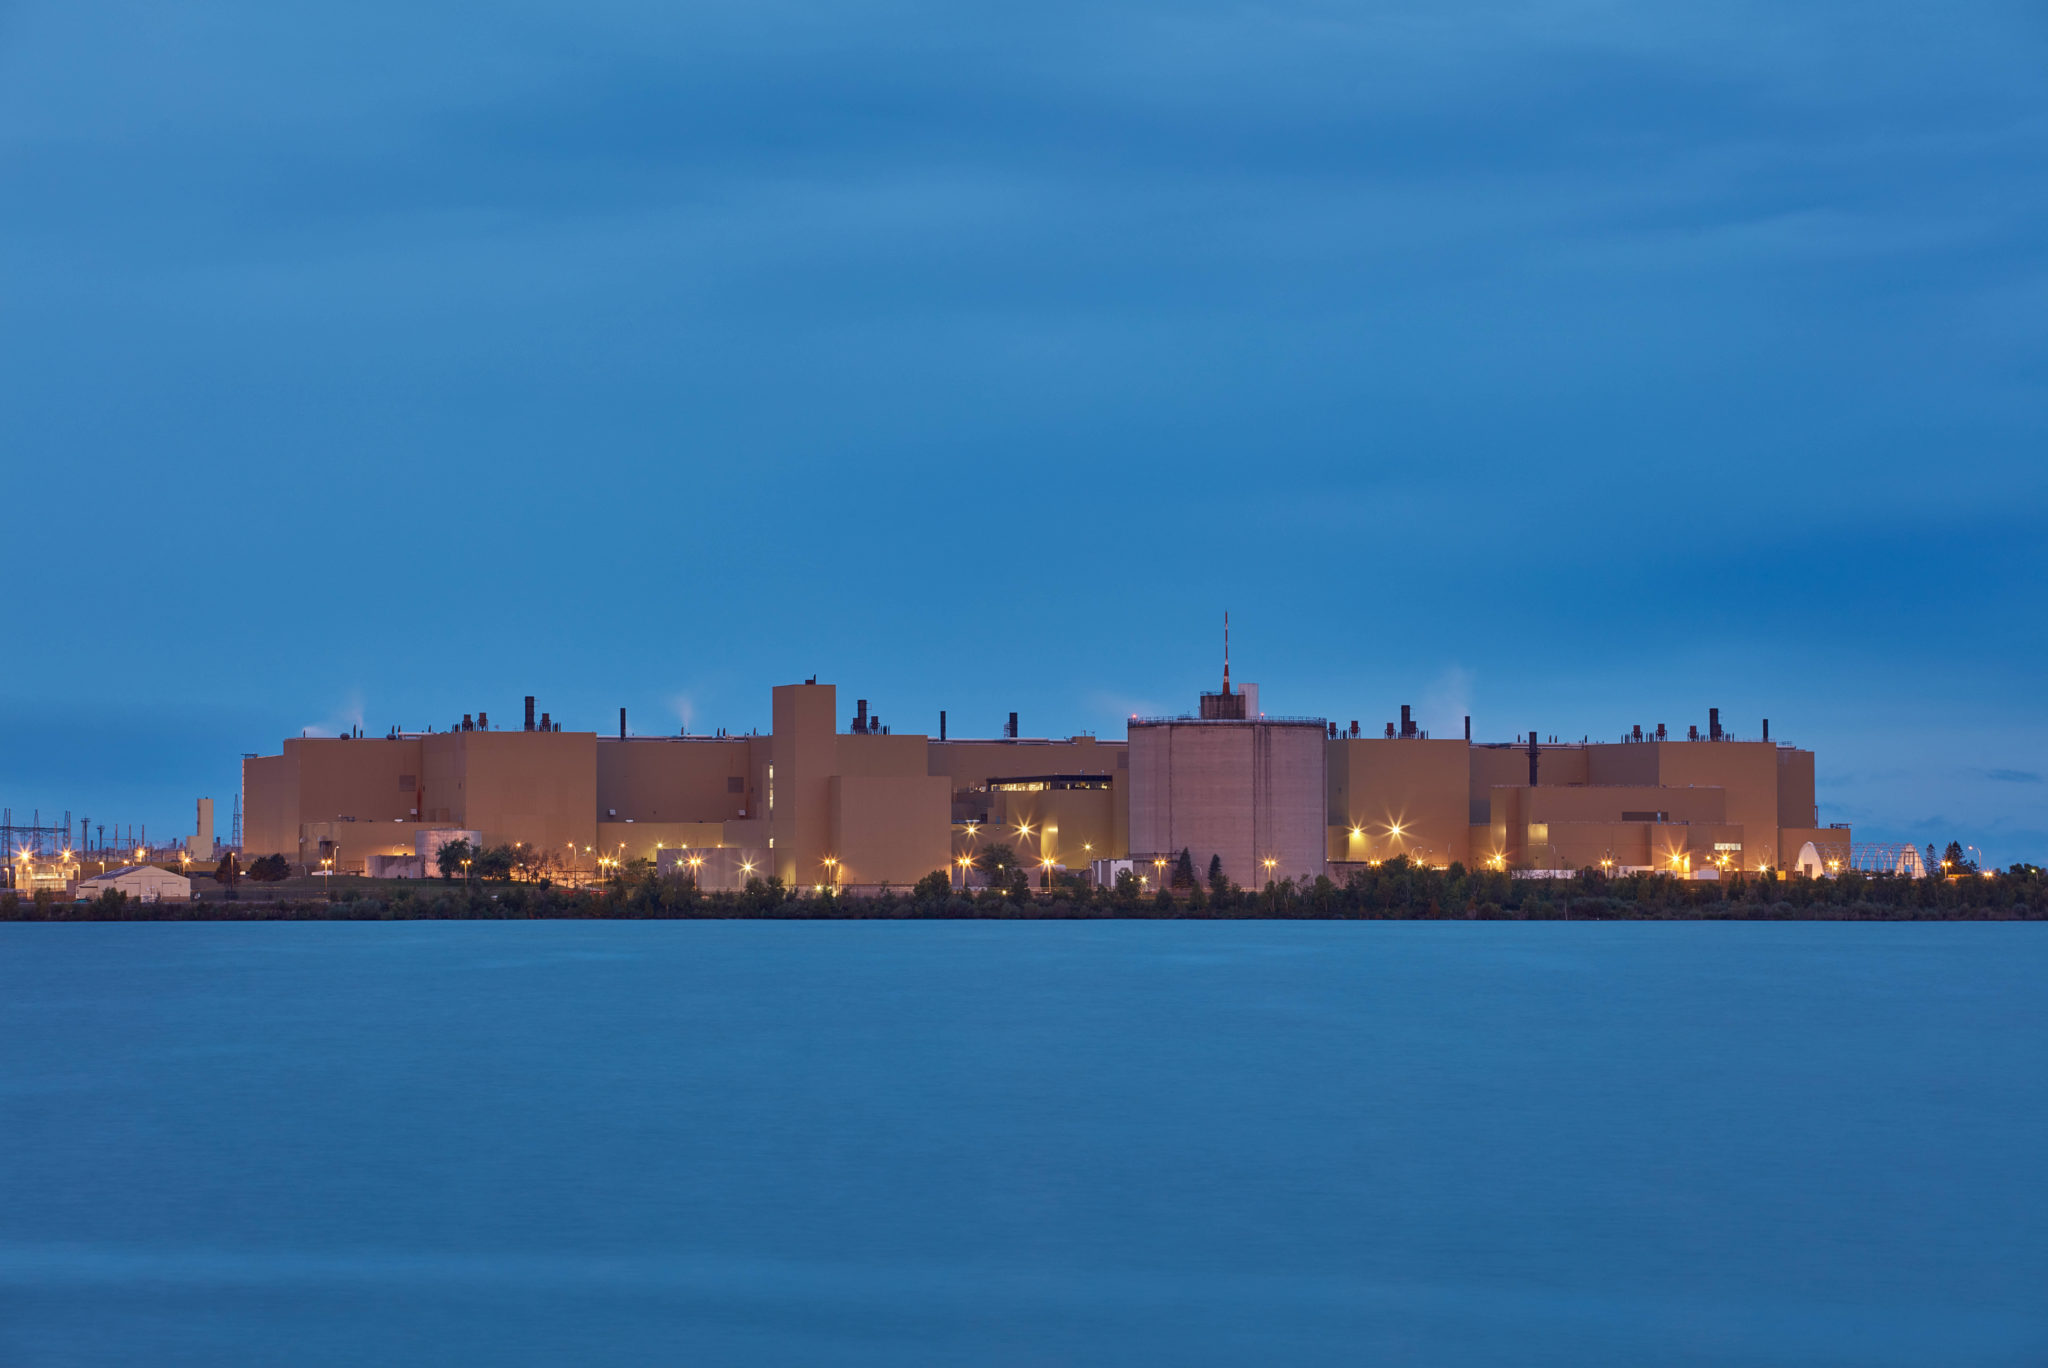 The Bruce Power Plant is seen at night.